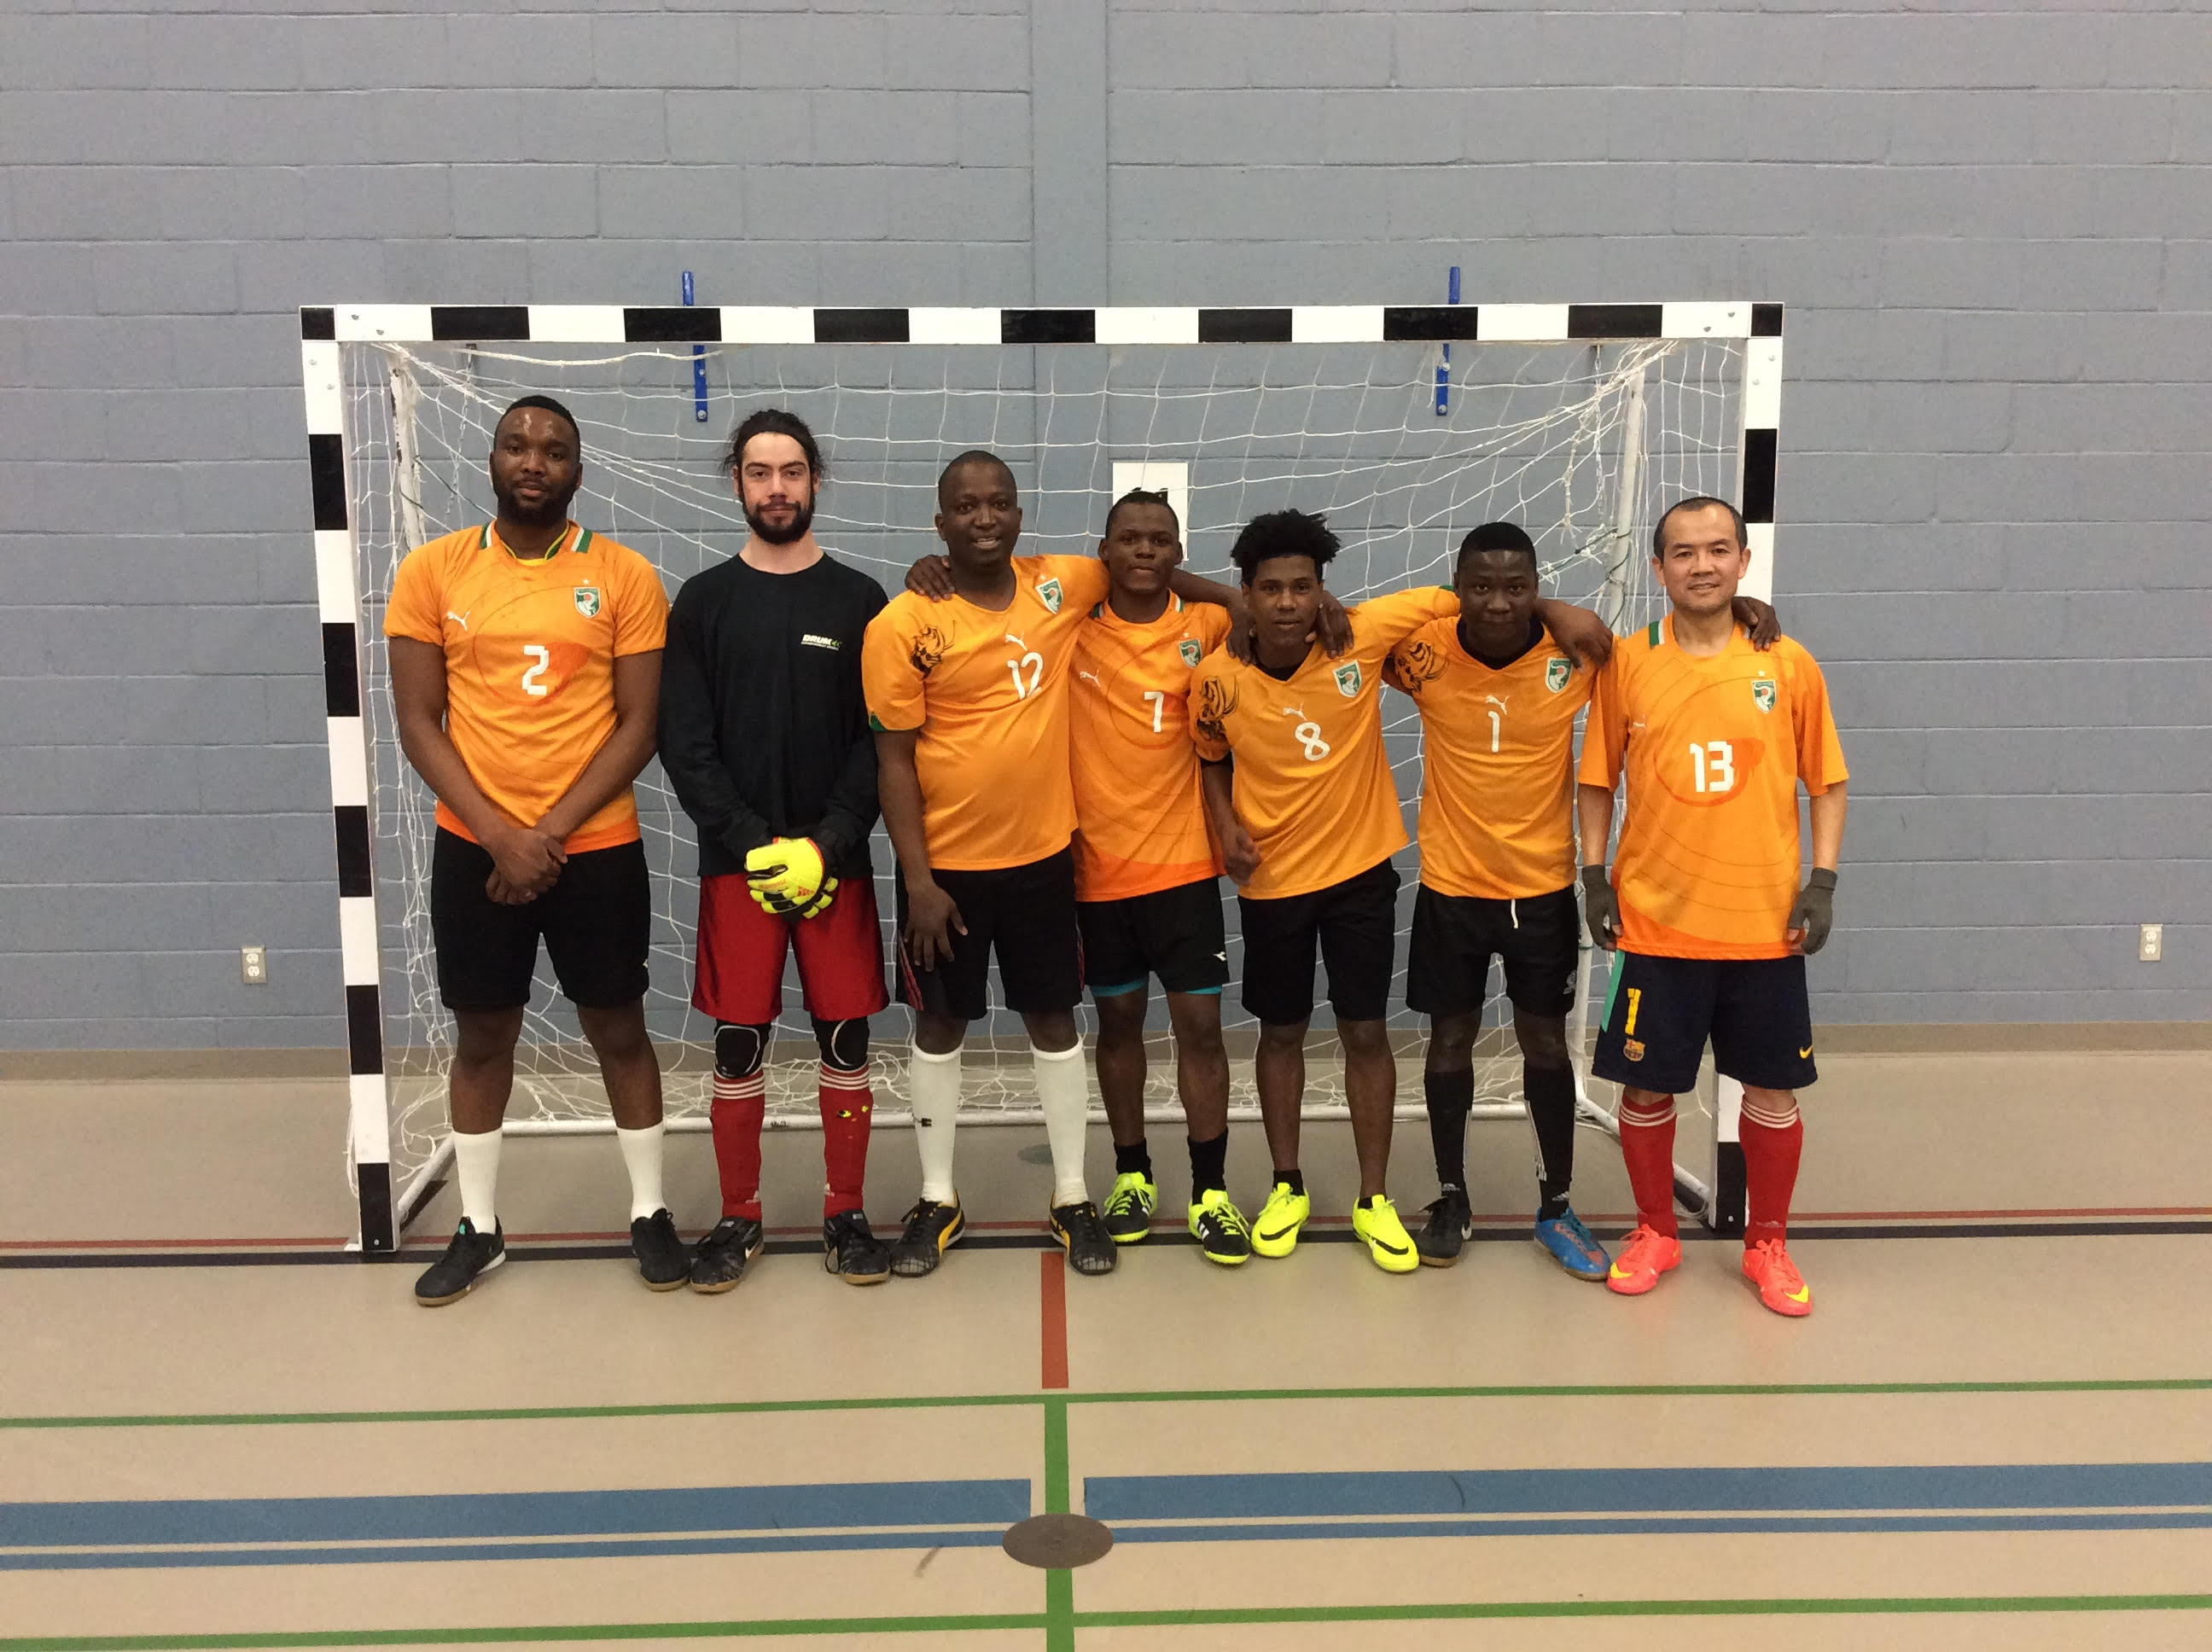 Ligue de soccer adulte de Boucherville Club de soccer